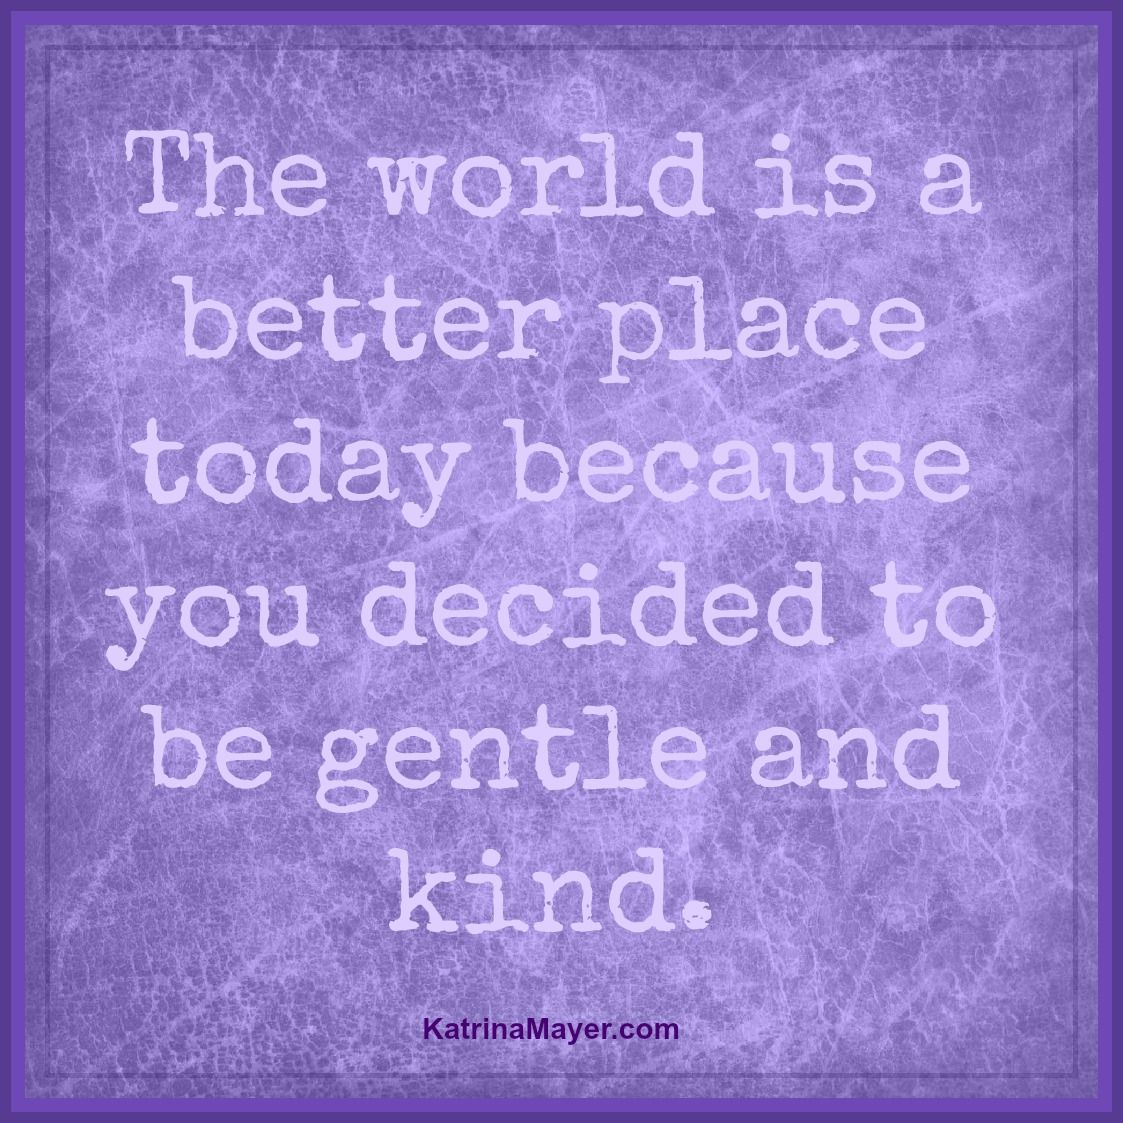 The World Is A Better Place Because You Decided To Be Gentle And Kind. Katrina  Mayer   Nice Saying For Your Littlies At Bed Time